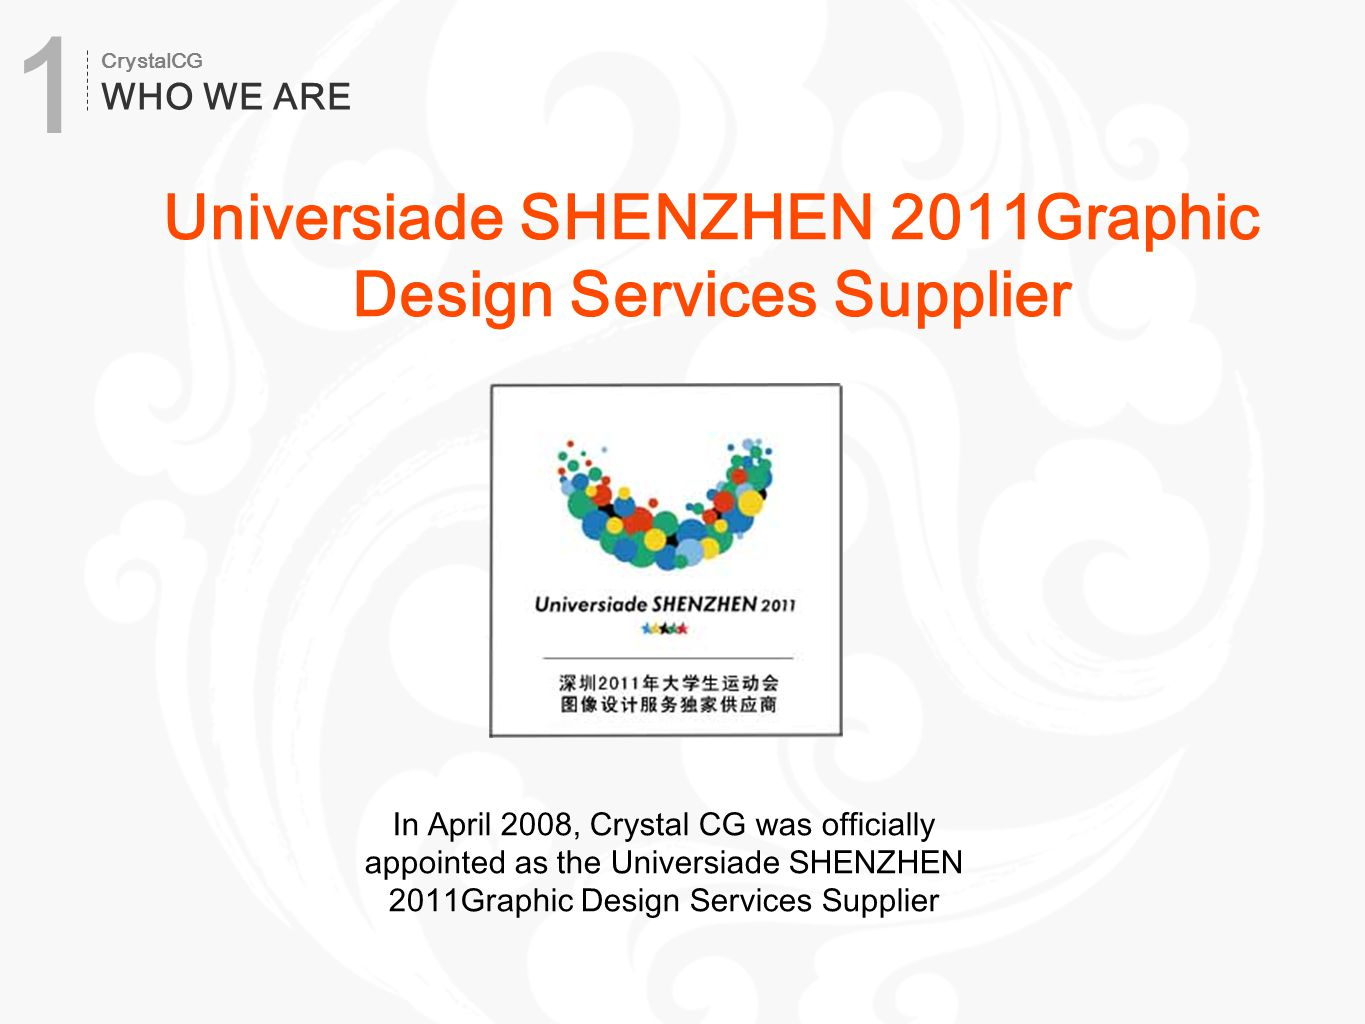 In April 2008, Crystal CG was officially appointed as the Universiade SHENZHEN 2011Graphic Design Services Supplier Universiade SHENZHEN 2011Graphic Design Services Supplier CrystalCG WHO WE ARE 1